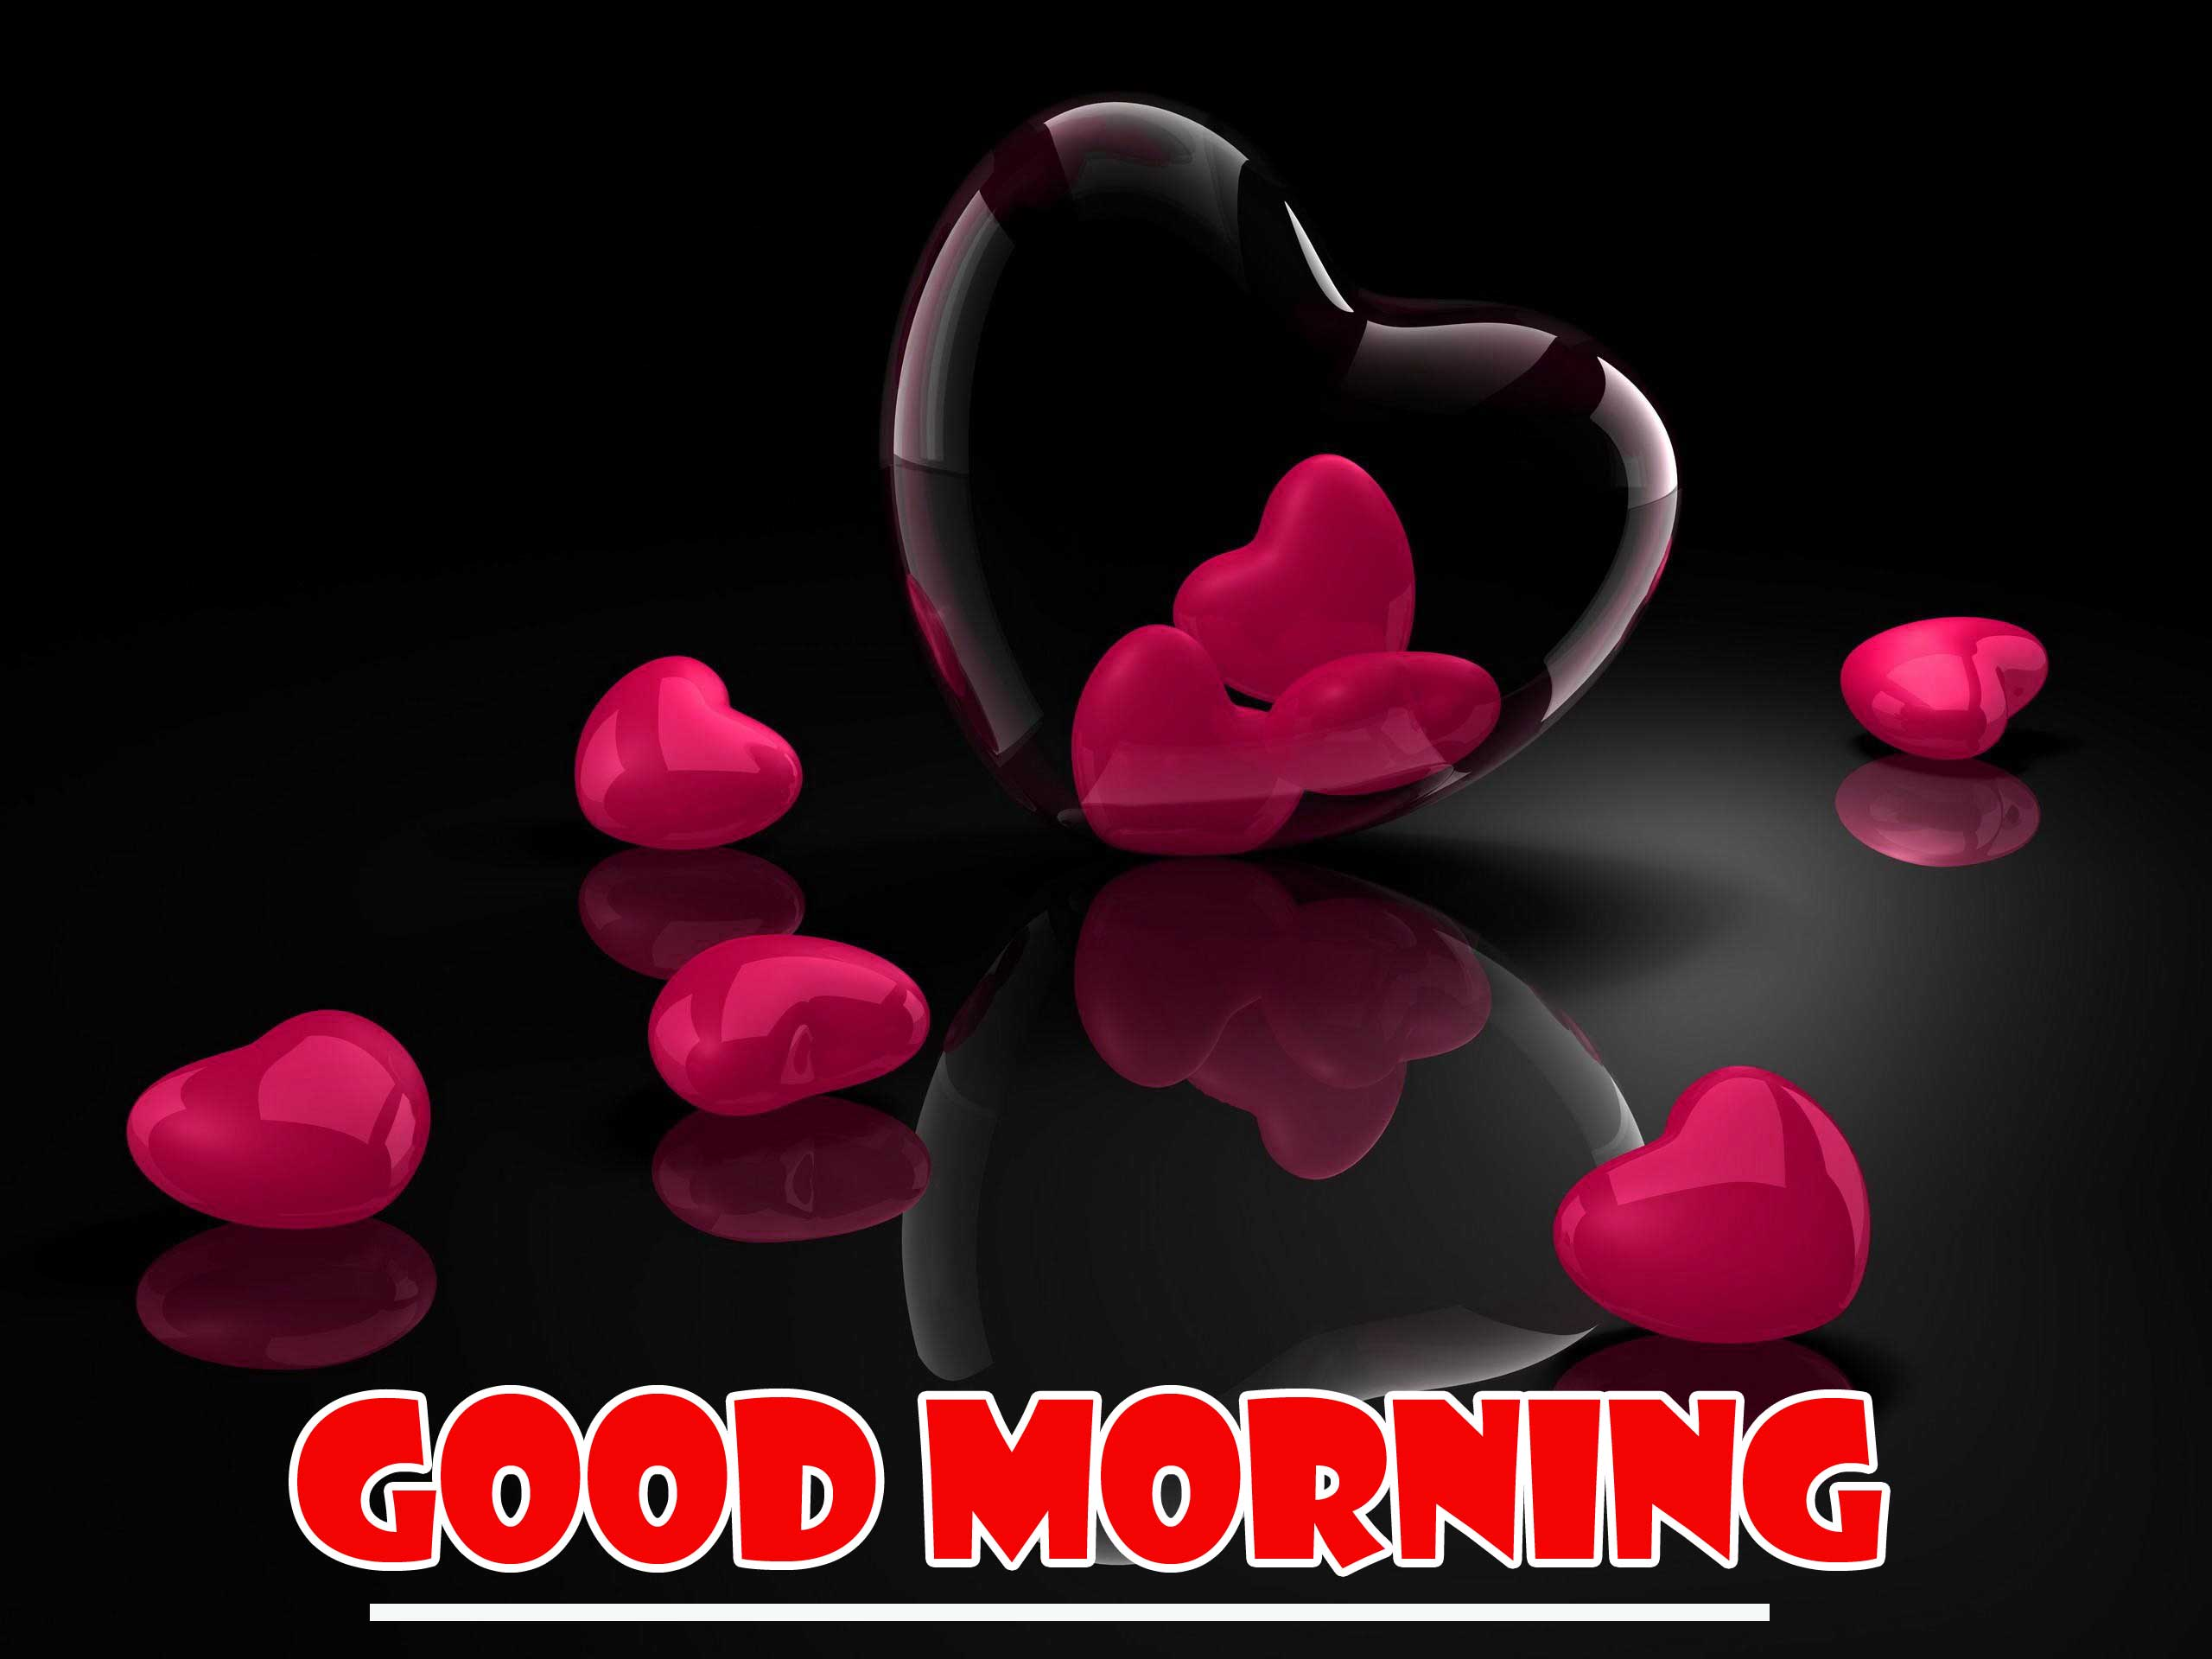 Sweet Dil Good Morning Images pics Download With Stylish Font